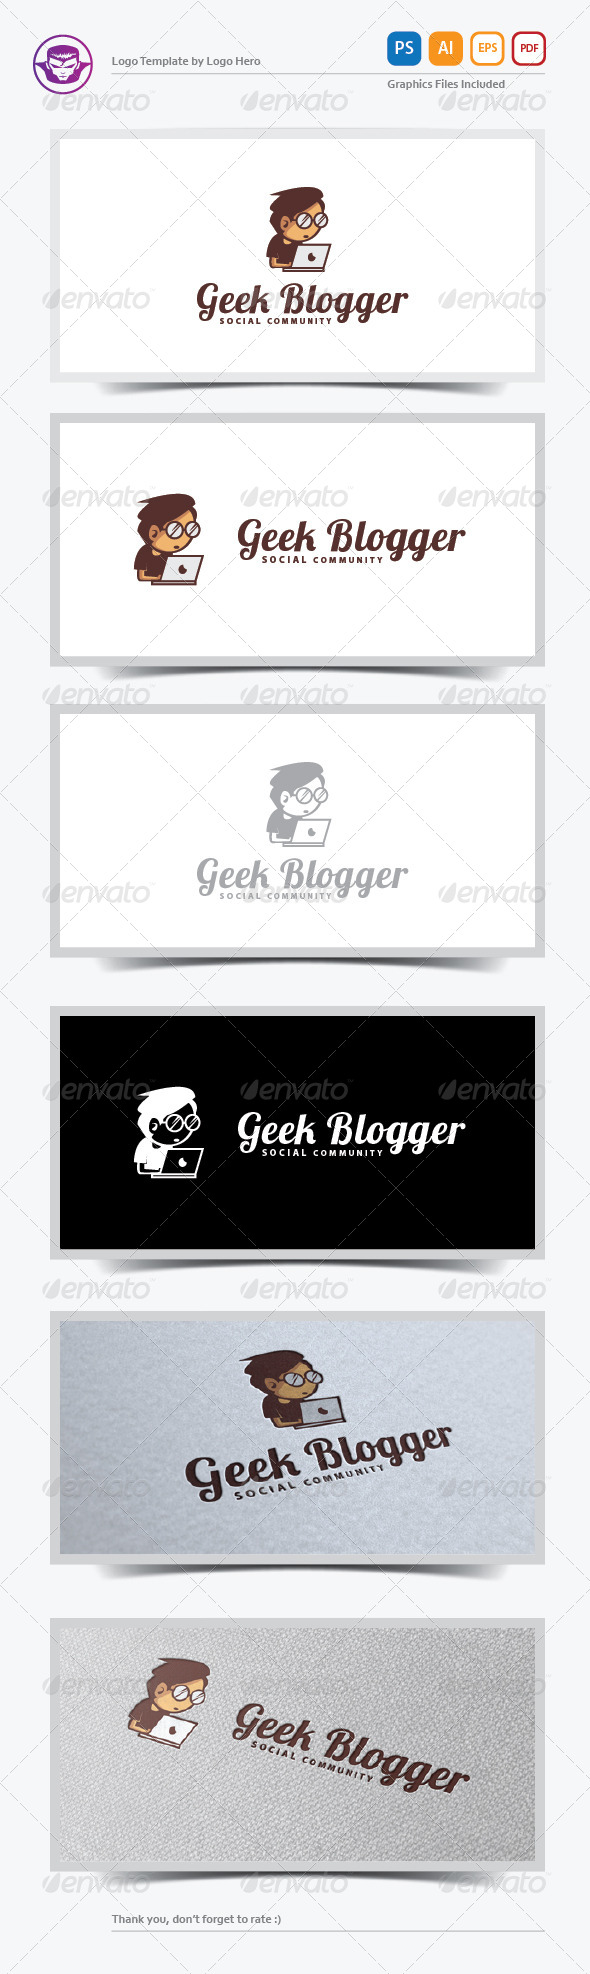 GraphicRiver Geek Blogger Logo Template 5892464